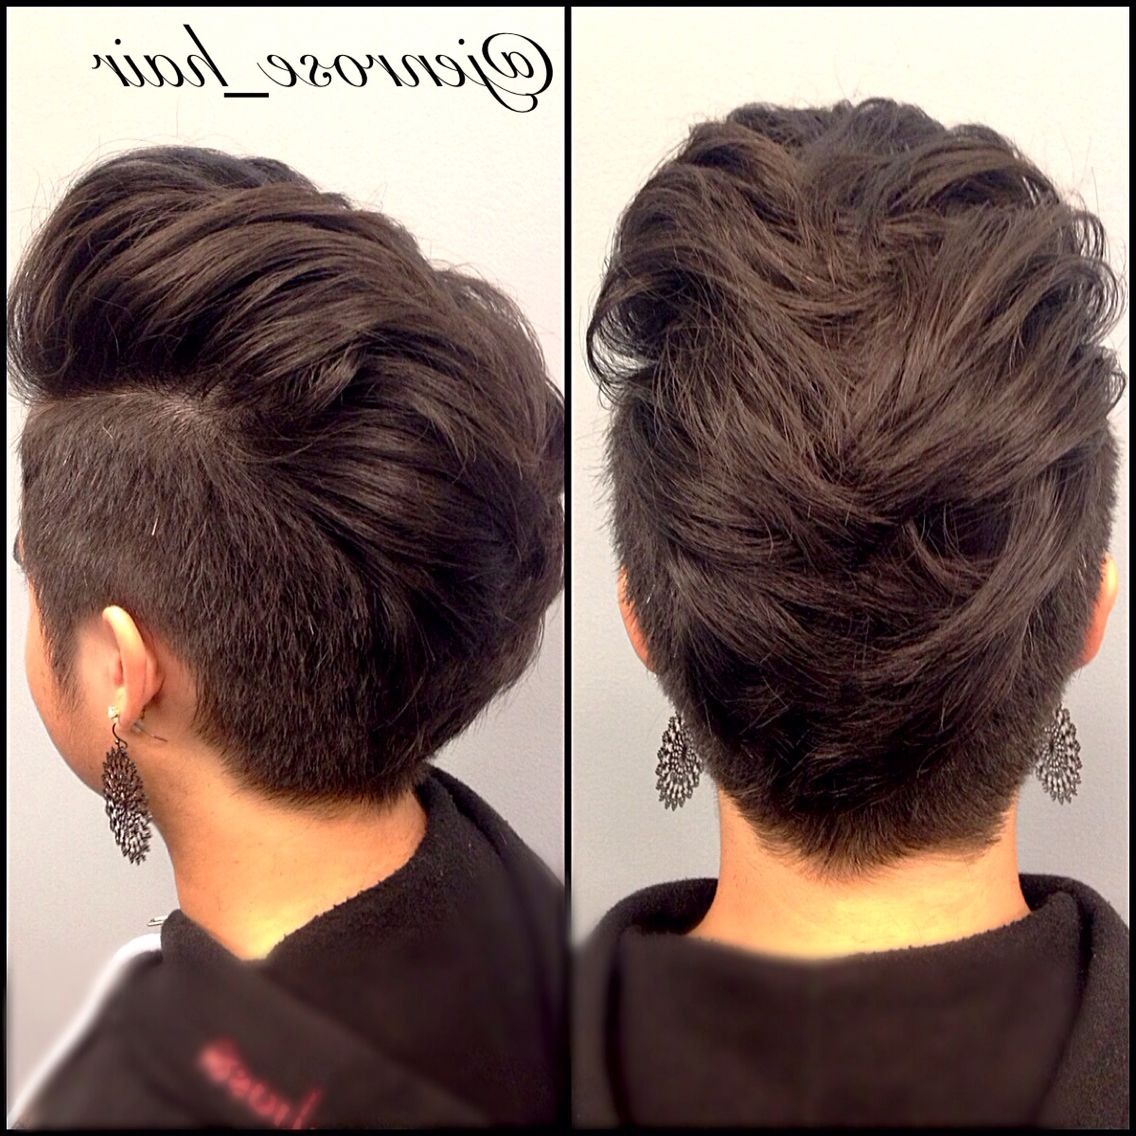 2017 The Faux Hawk Mohawk Hairstyles Throughout Women's Faux Hawk With Shaved Sides. Shorts Women's Hair Cut (View 1 of 20)